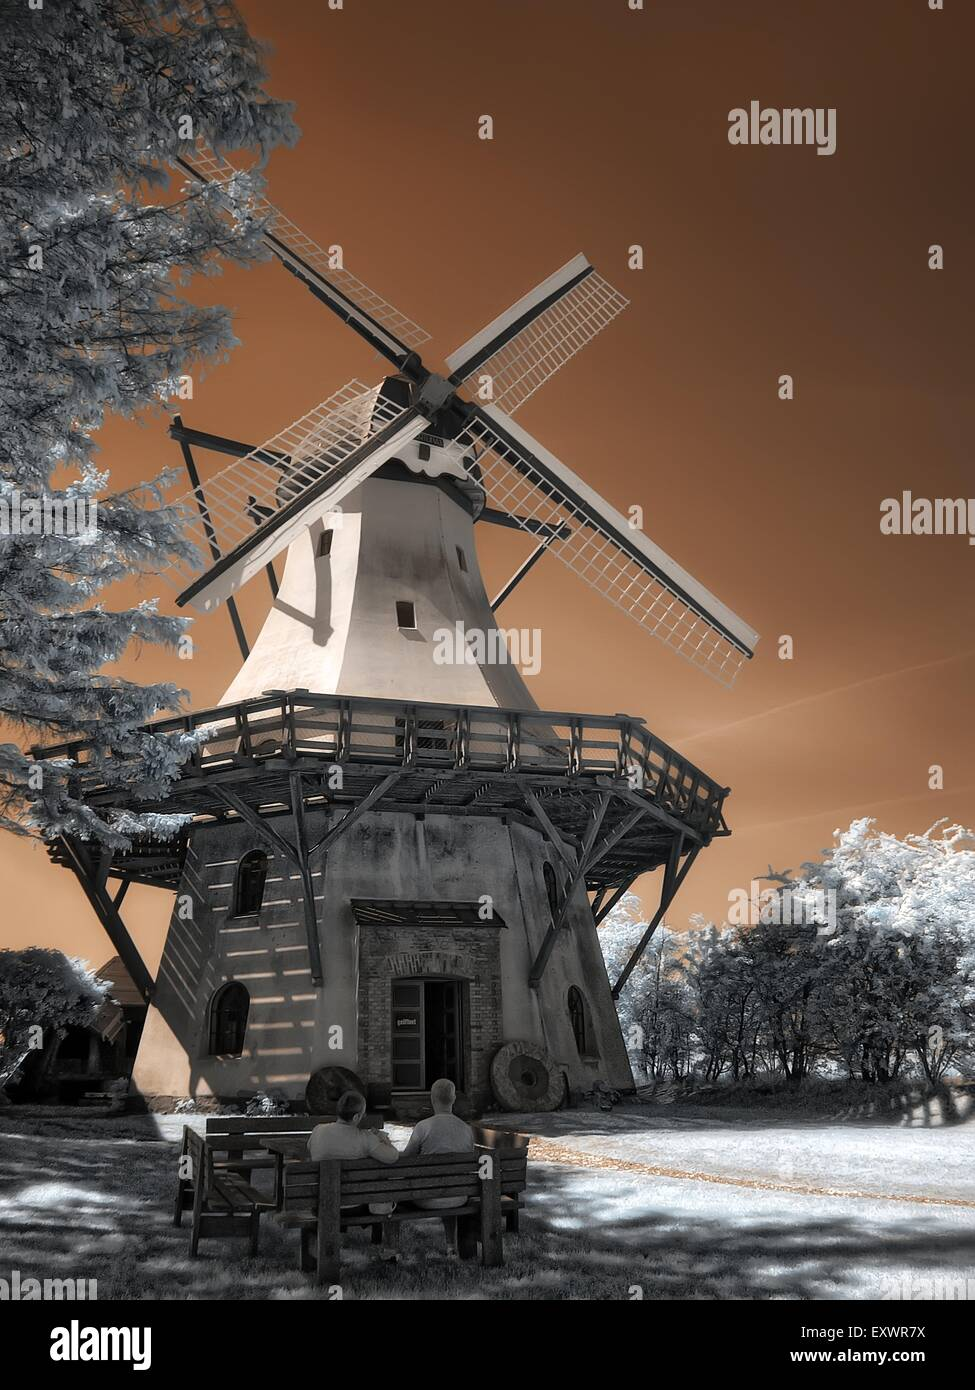 Windmill at open-air museum in Langballig, Schleswig-Holstein, Germany, infrared photography - Stock Image